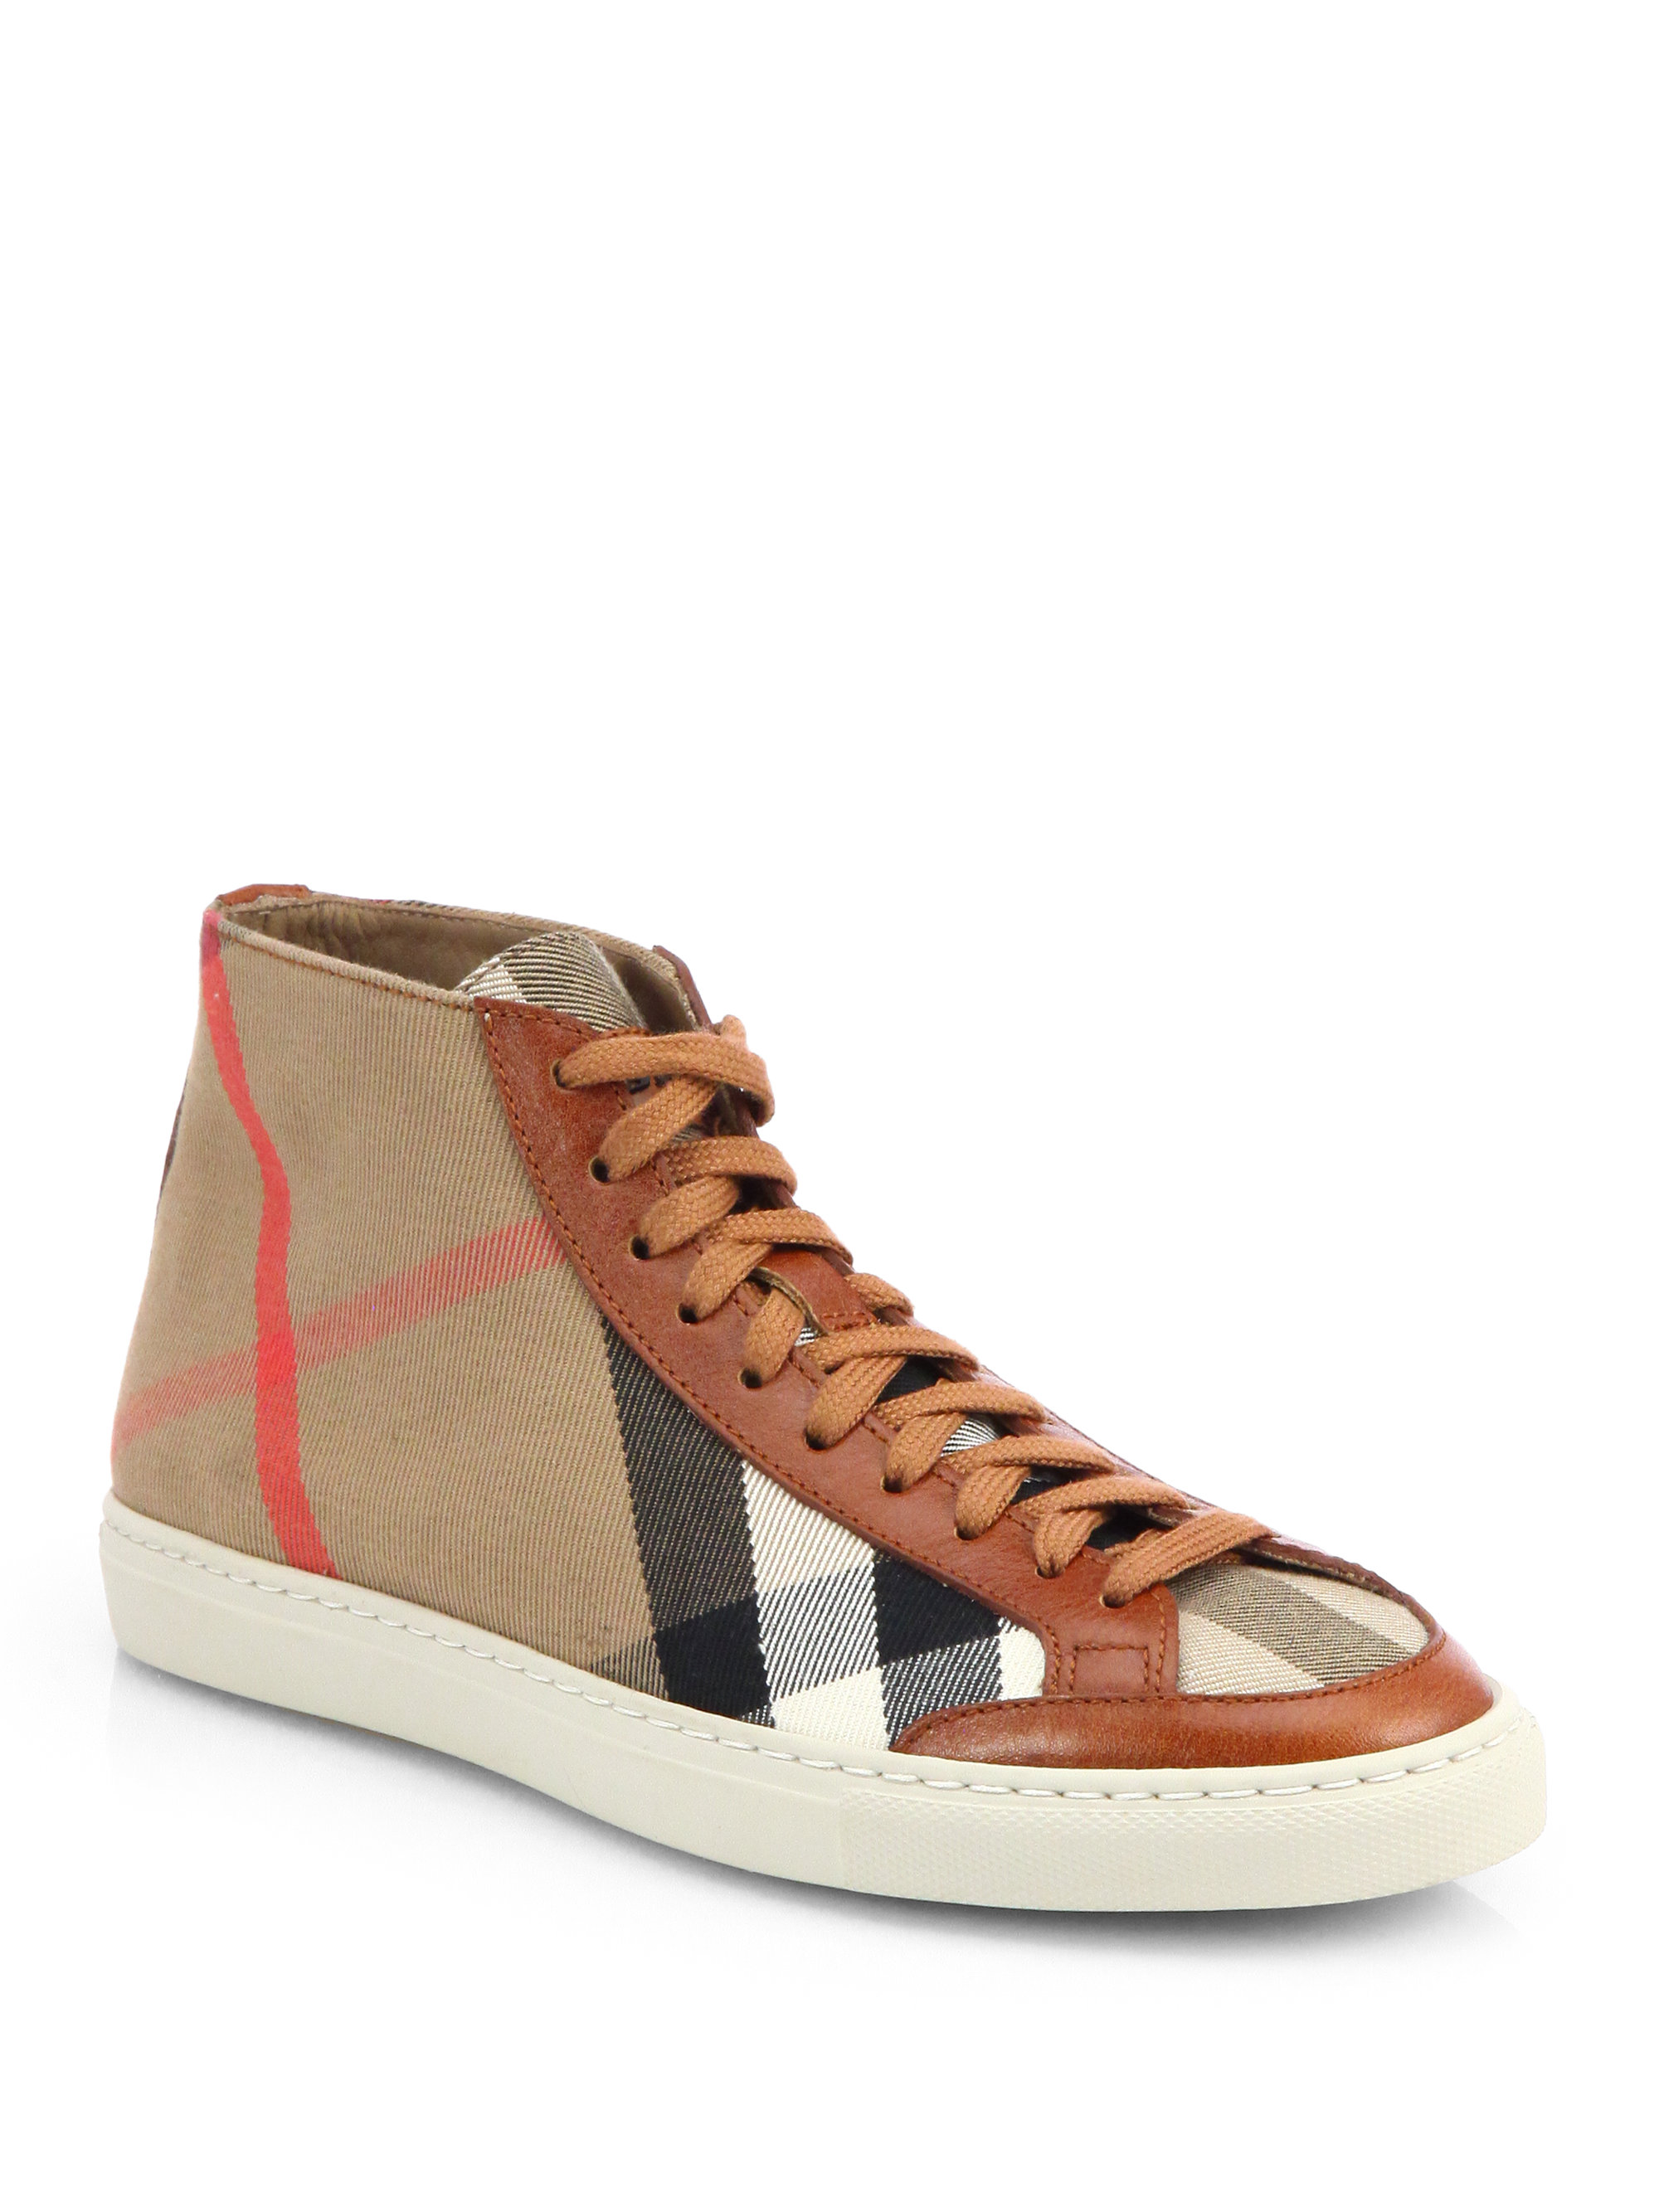 Saks Womens Shoes